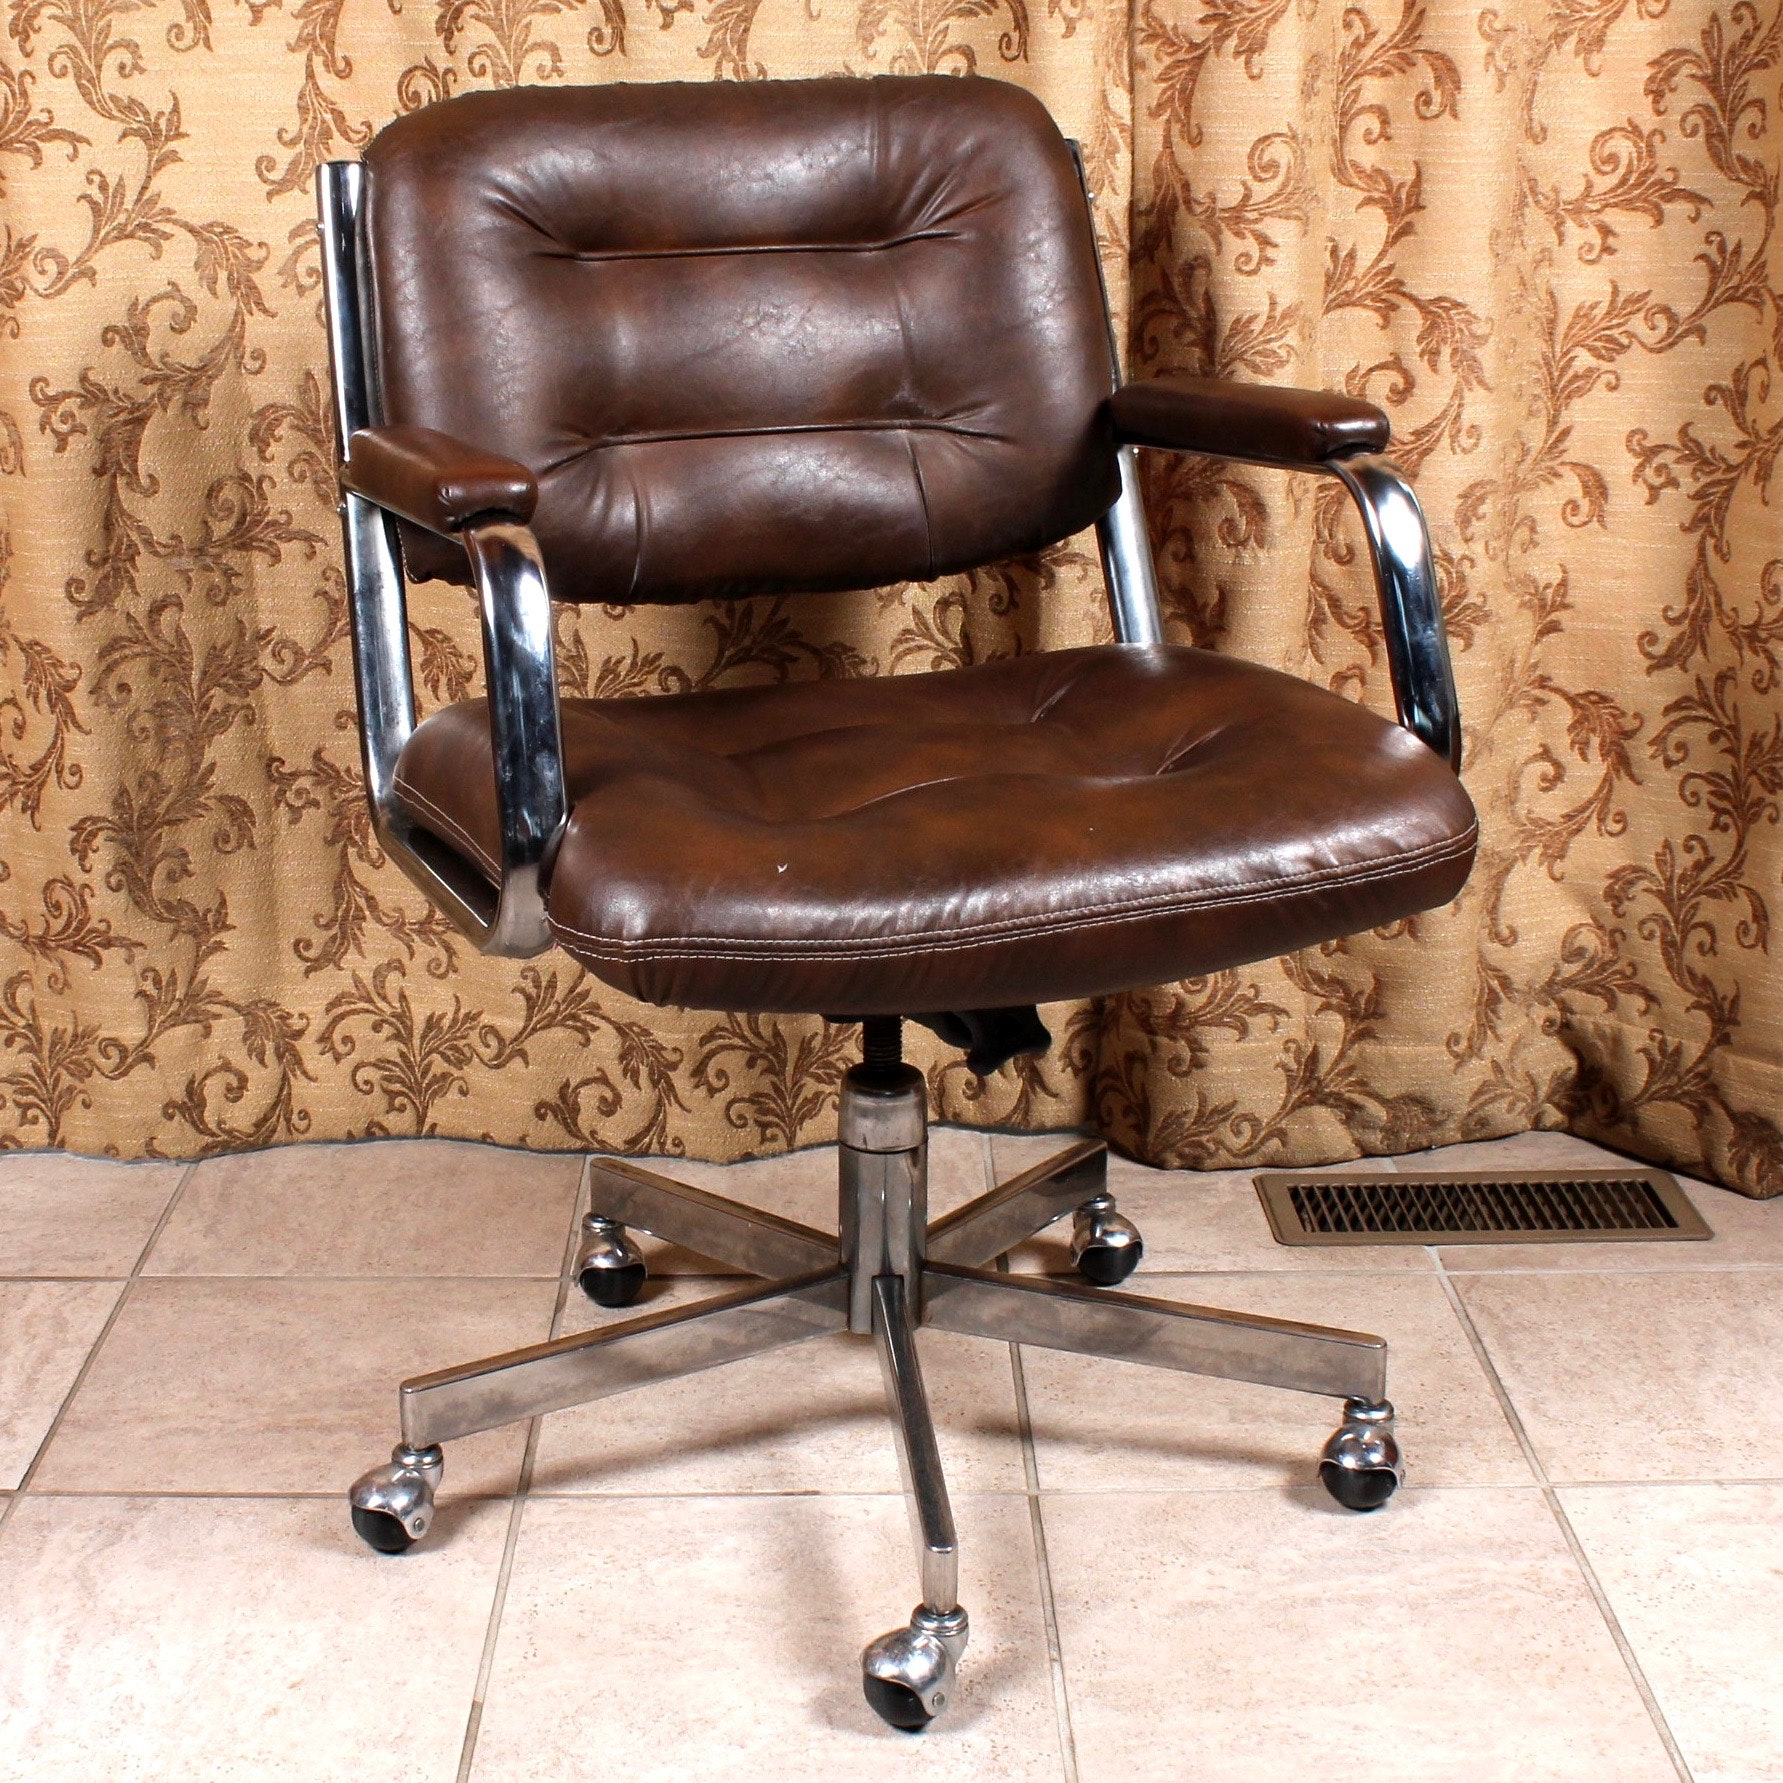 Vintage Style Faux Leather Upholstered Office Chair